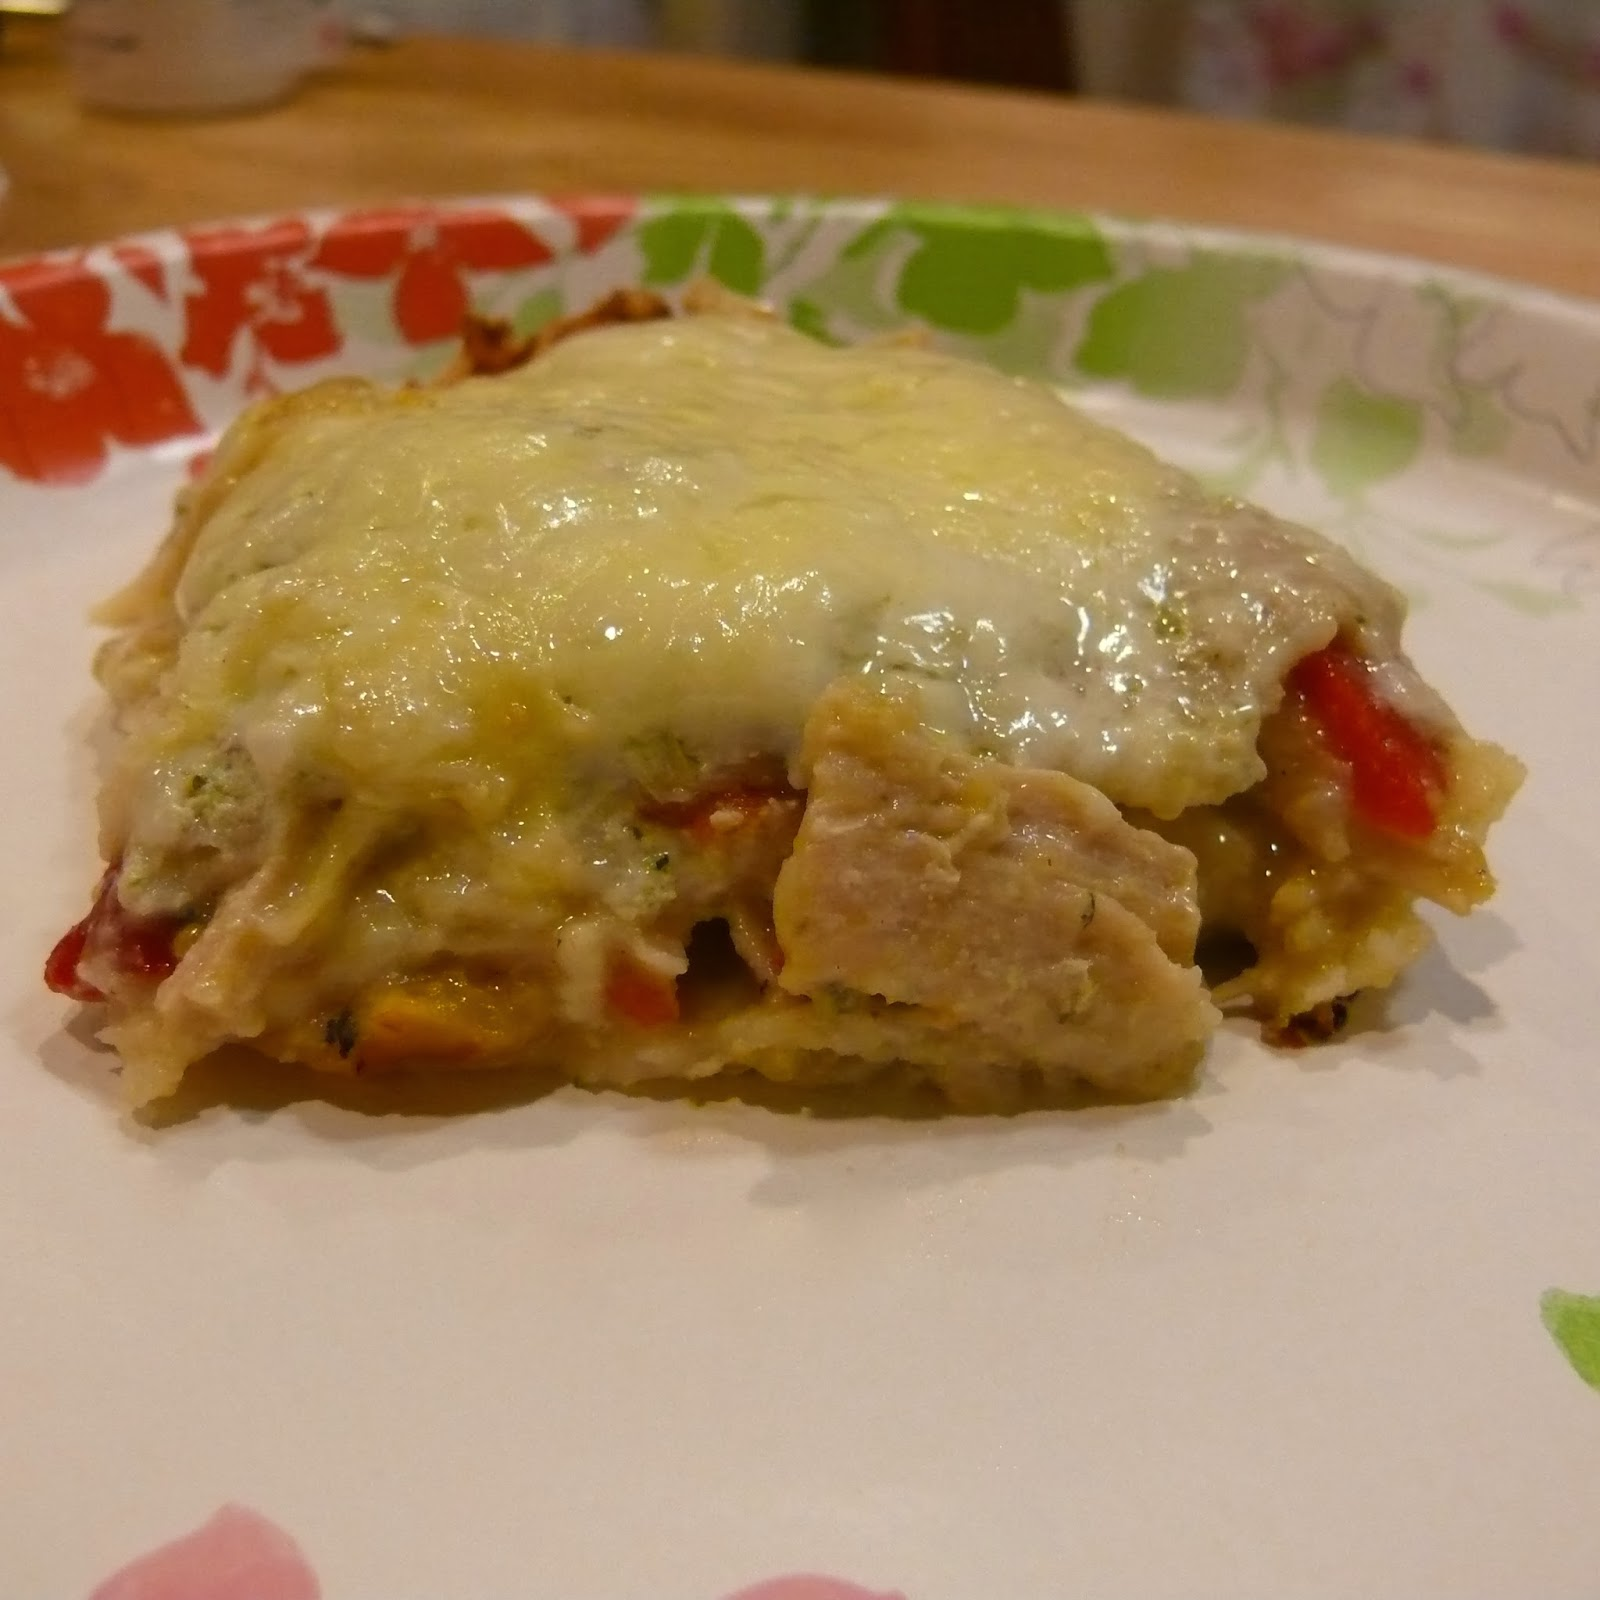 ... enchilada sauce but everything else about an enchilada is right up my